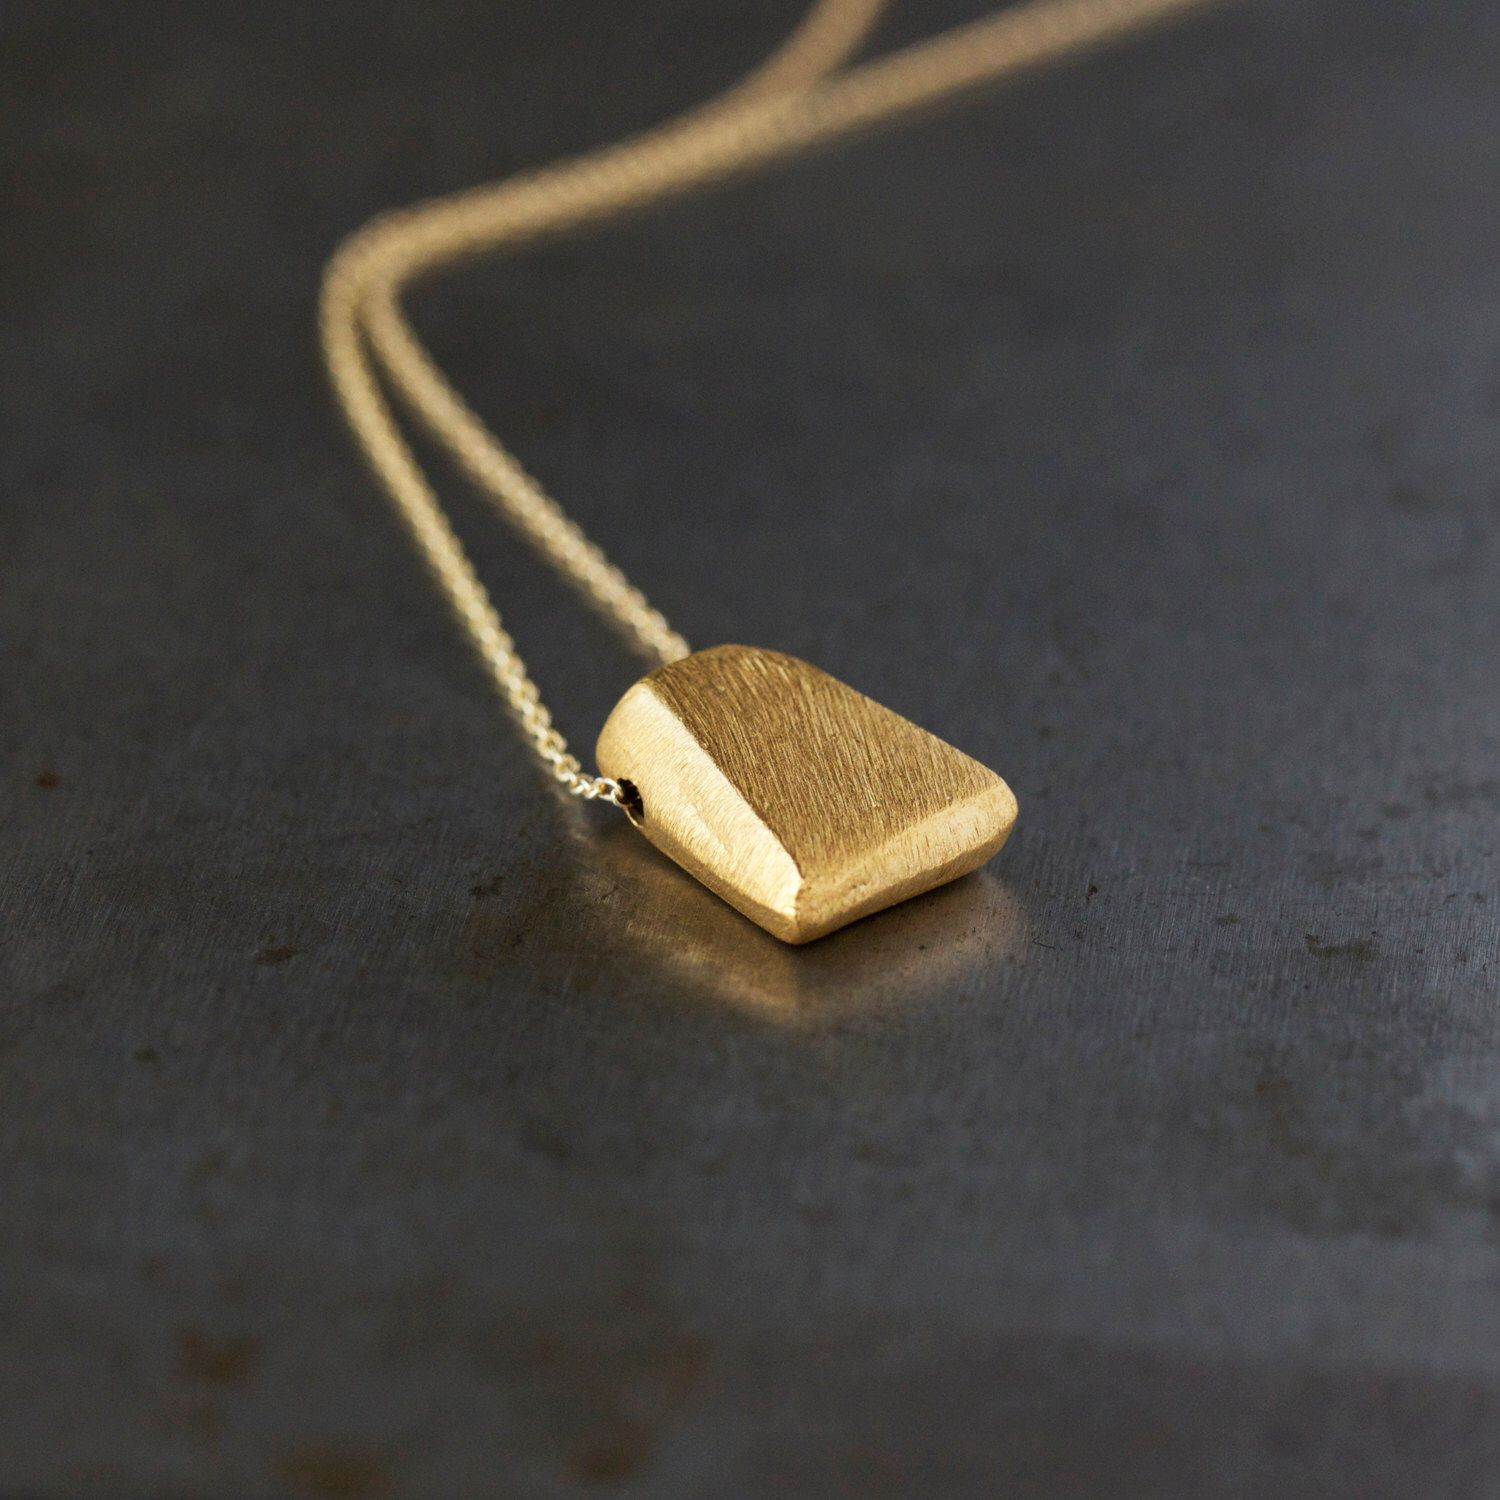 Gold Triangle Necklace 14k Gold Filled Layering Jewelry Gold Etsy Gold Triangle Necklace Layered Jewelry Triangle Necklace